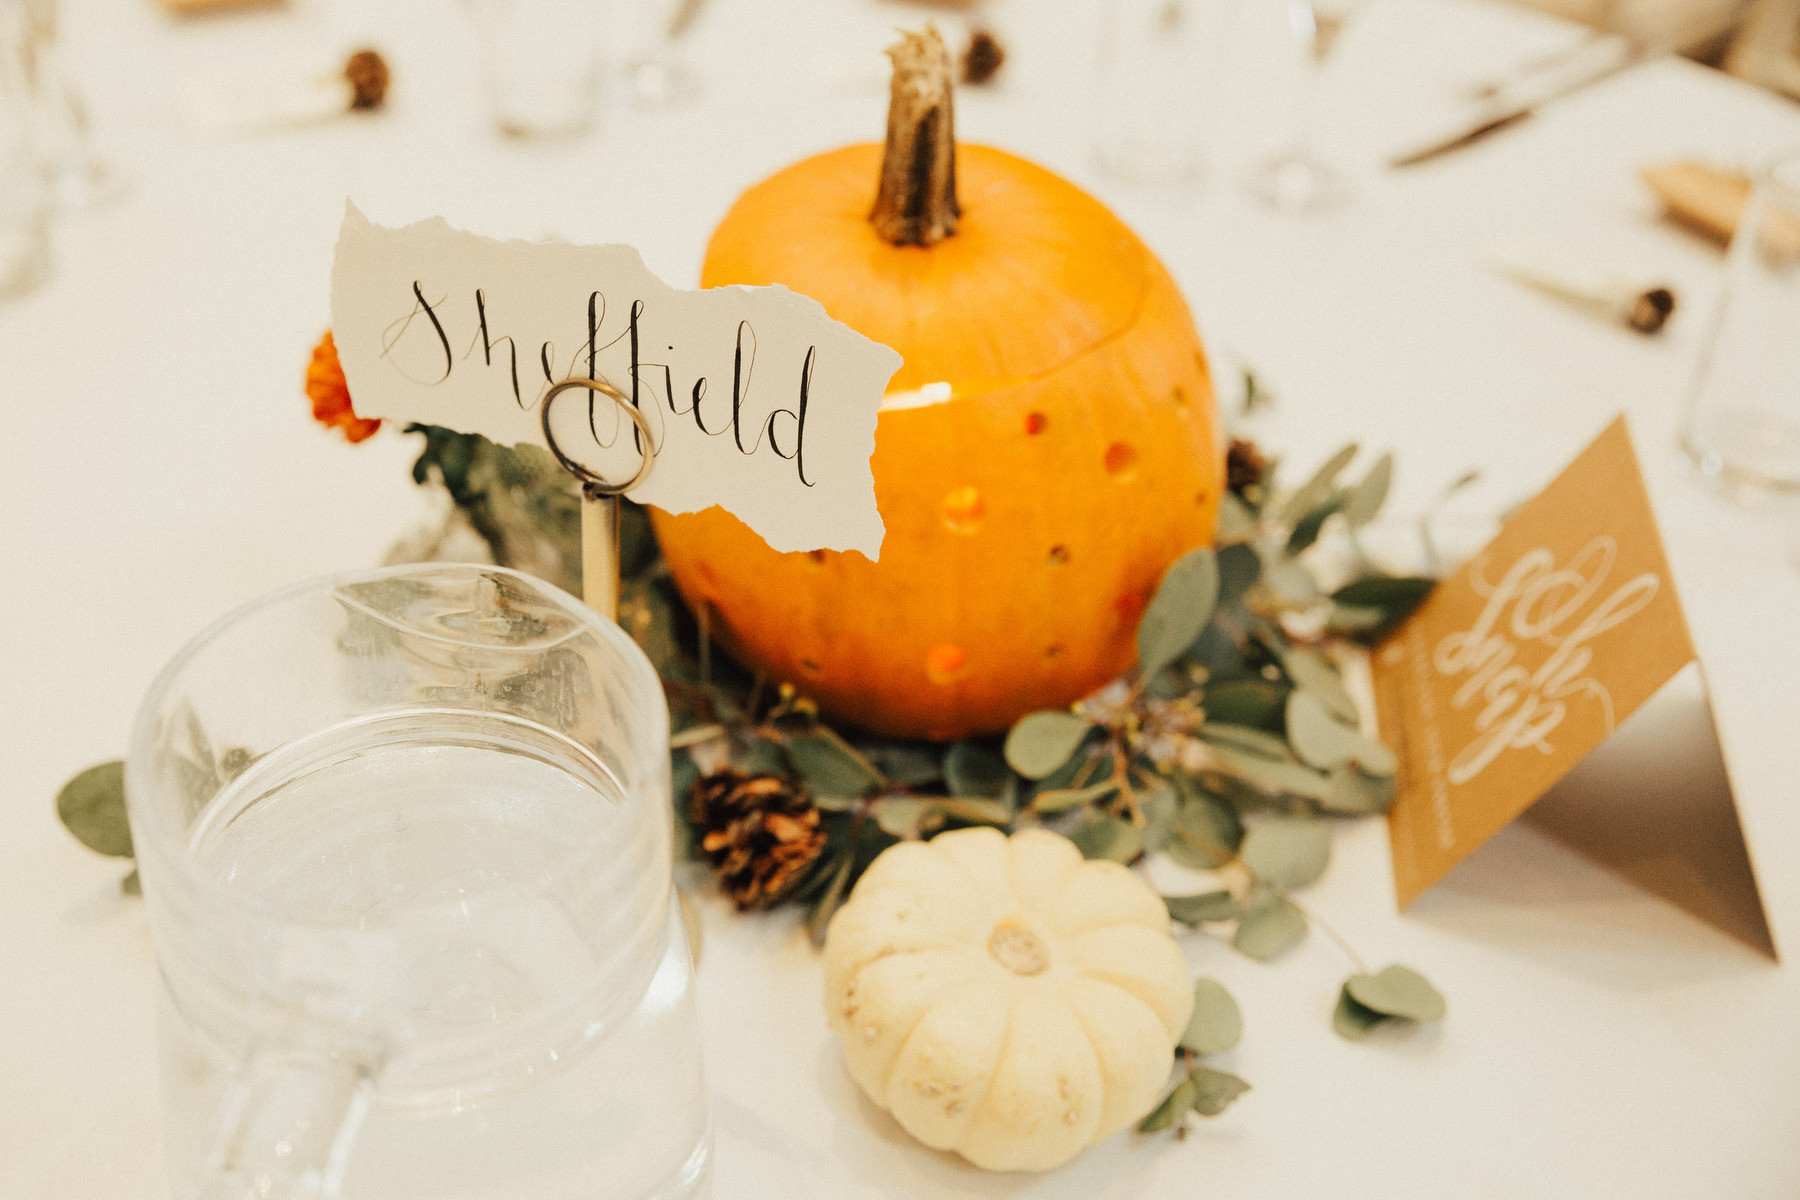 The centerpieces included white and orange pumpkins, greenery and pinecones